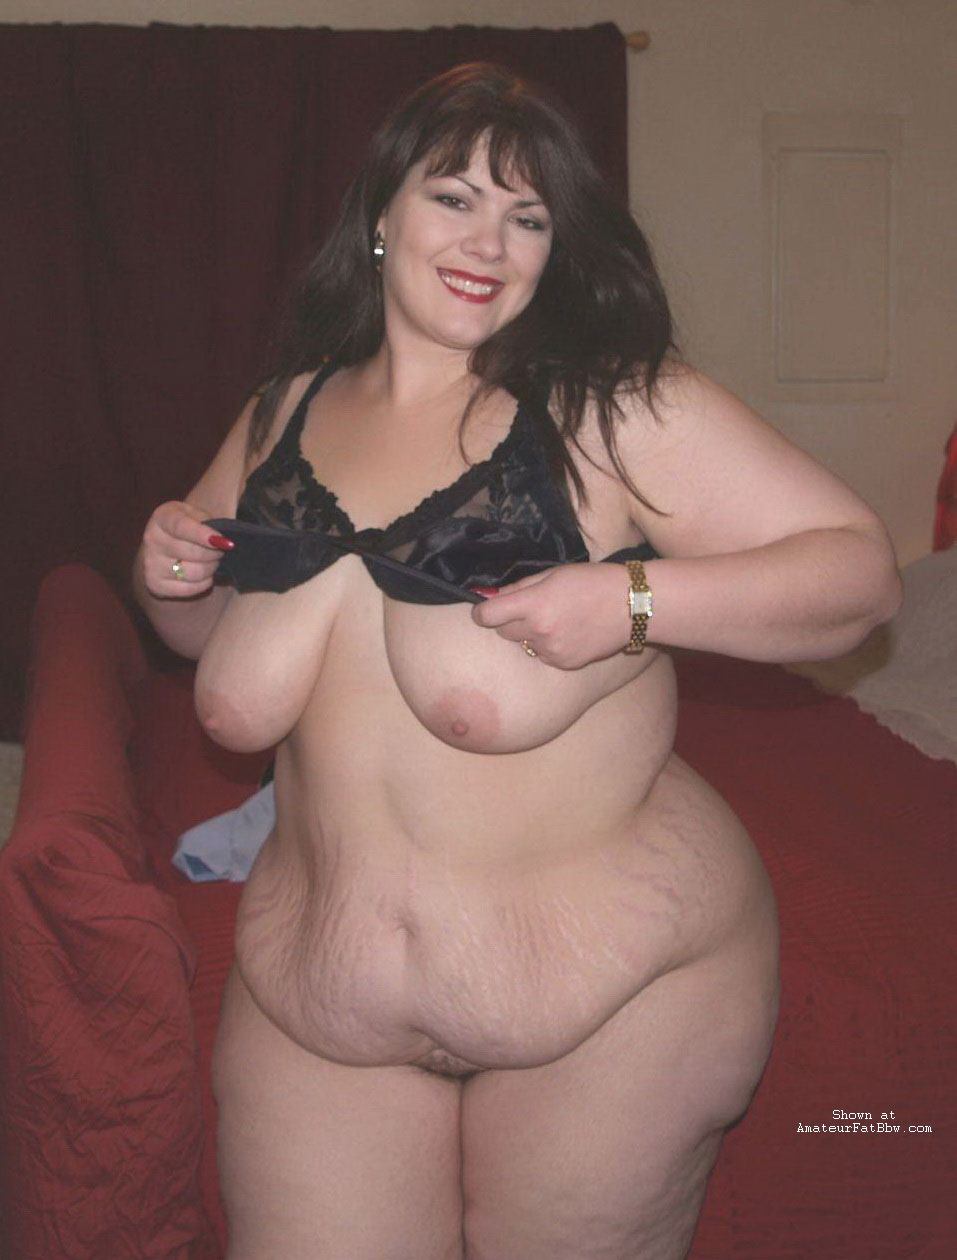 Nude photos of heavy girls